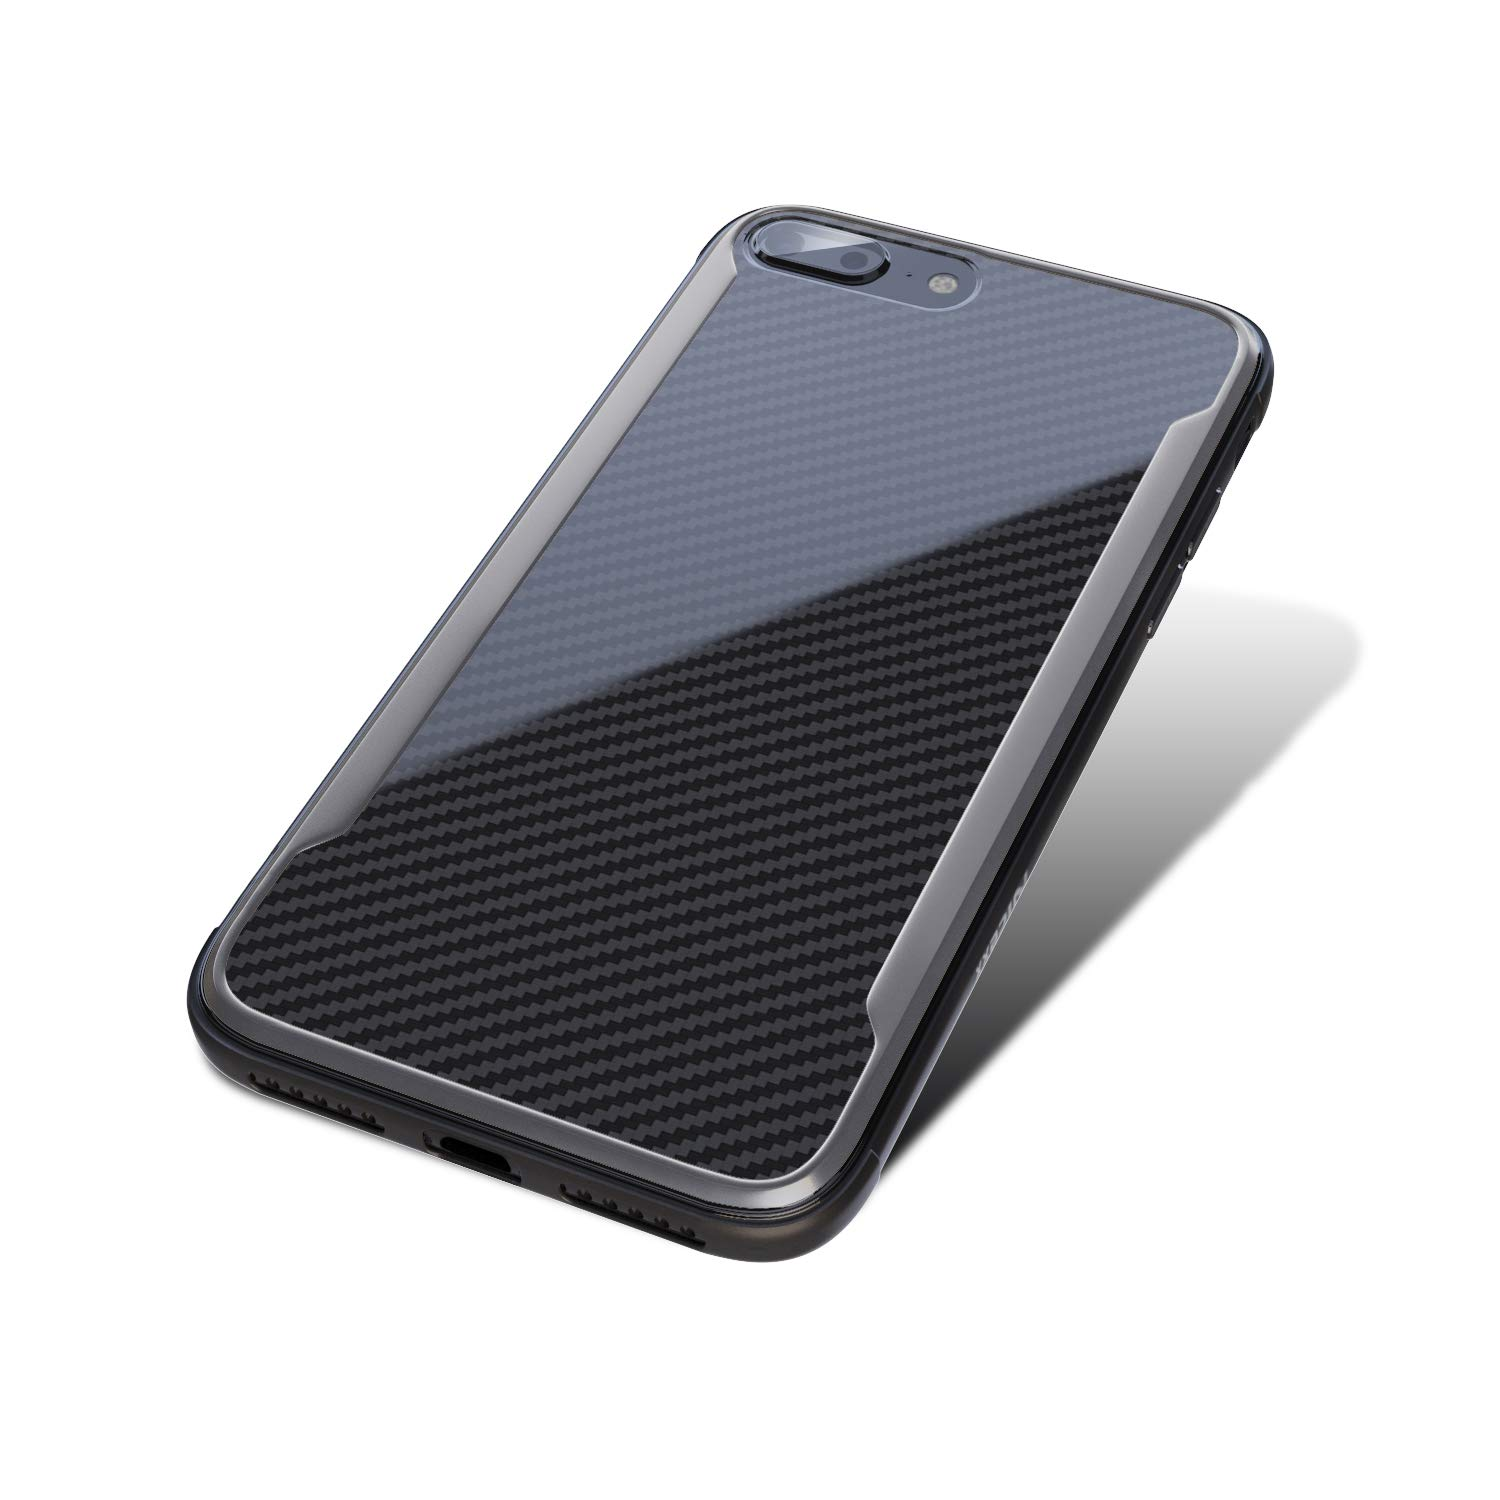 Black Shockproof 12ft Scratch Resistant Lightweight Compatible with Apple iPhone 7 Plus//8 Plus iPhone 7 Plus Case Carbon Fiber Case Drop Tested iPhone 8 Plus Case Wireless Charging